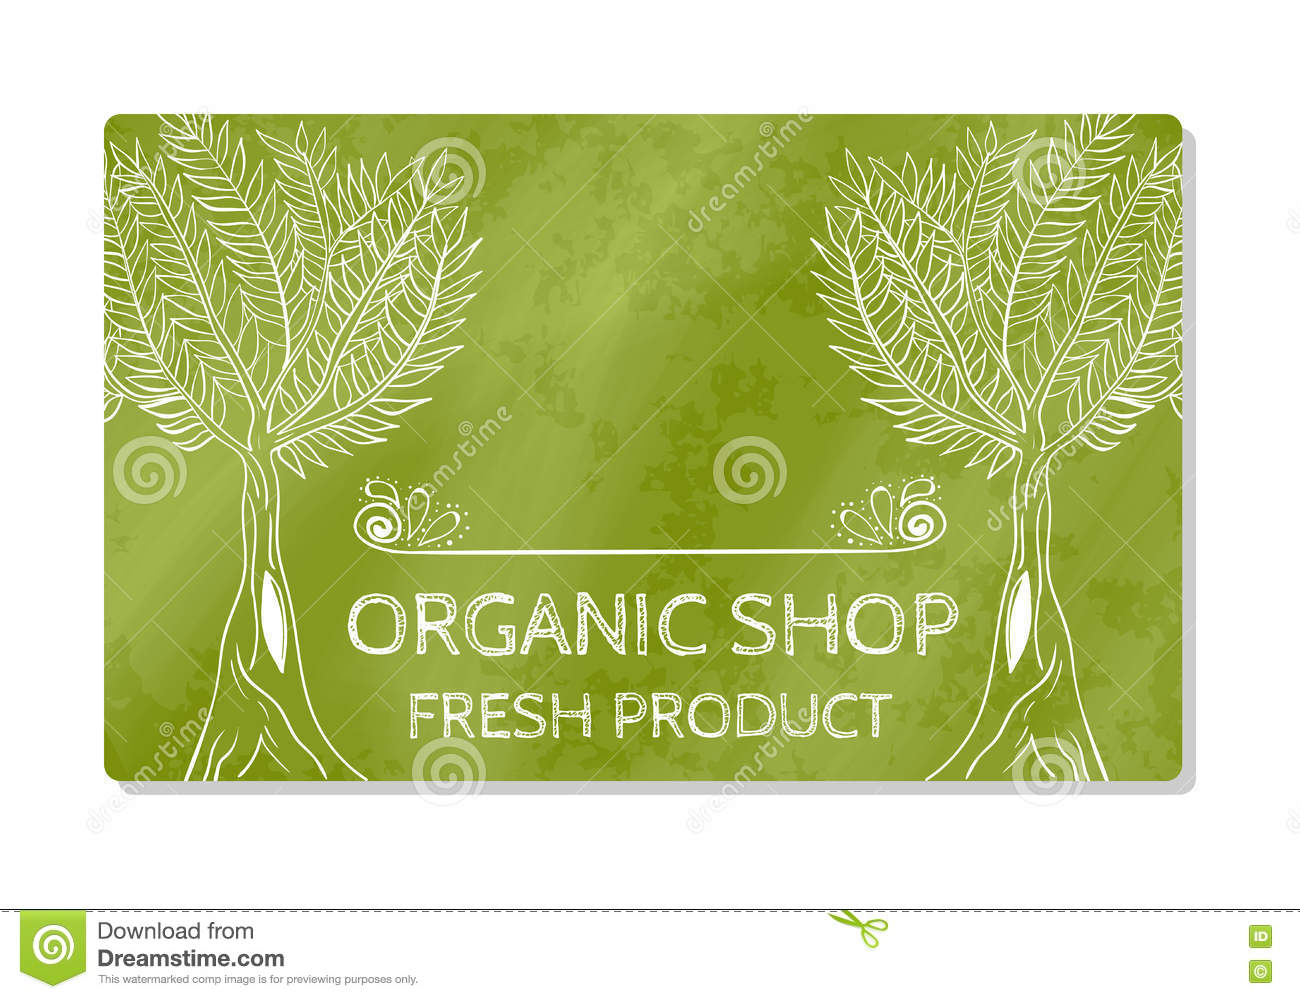 business card or storefront selling fresh organic food